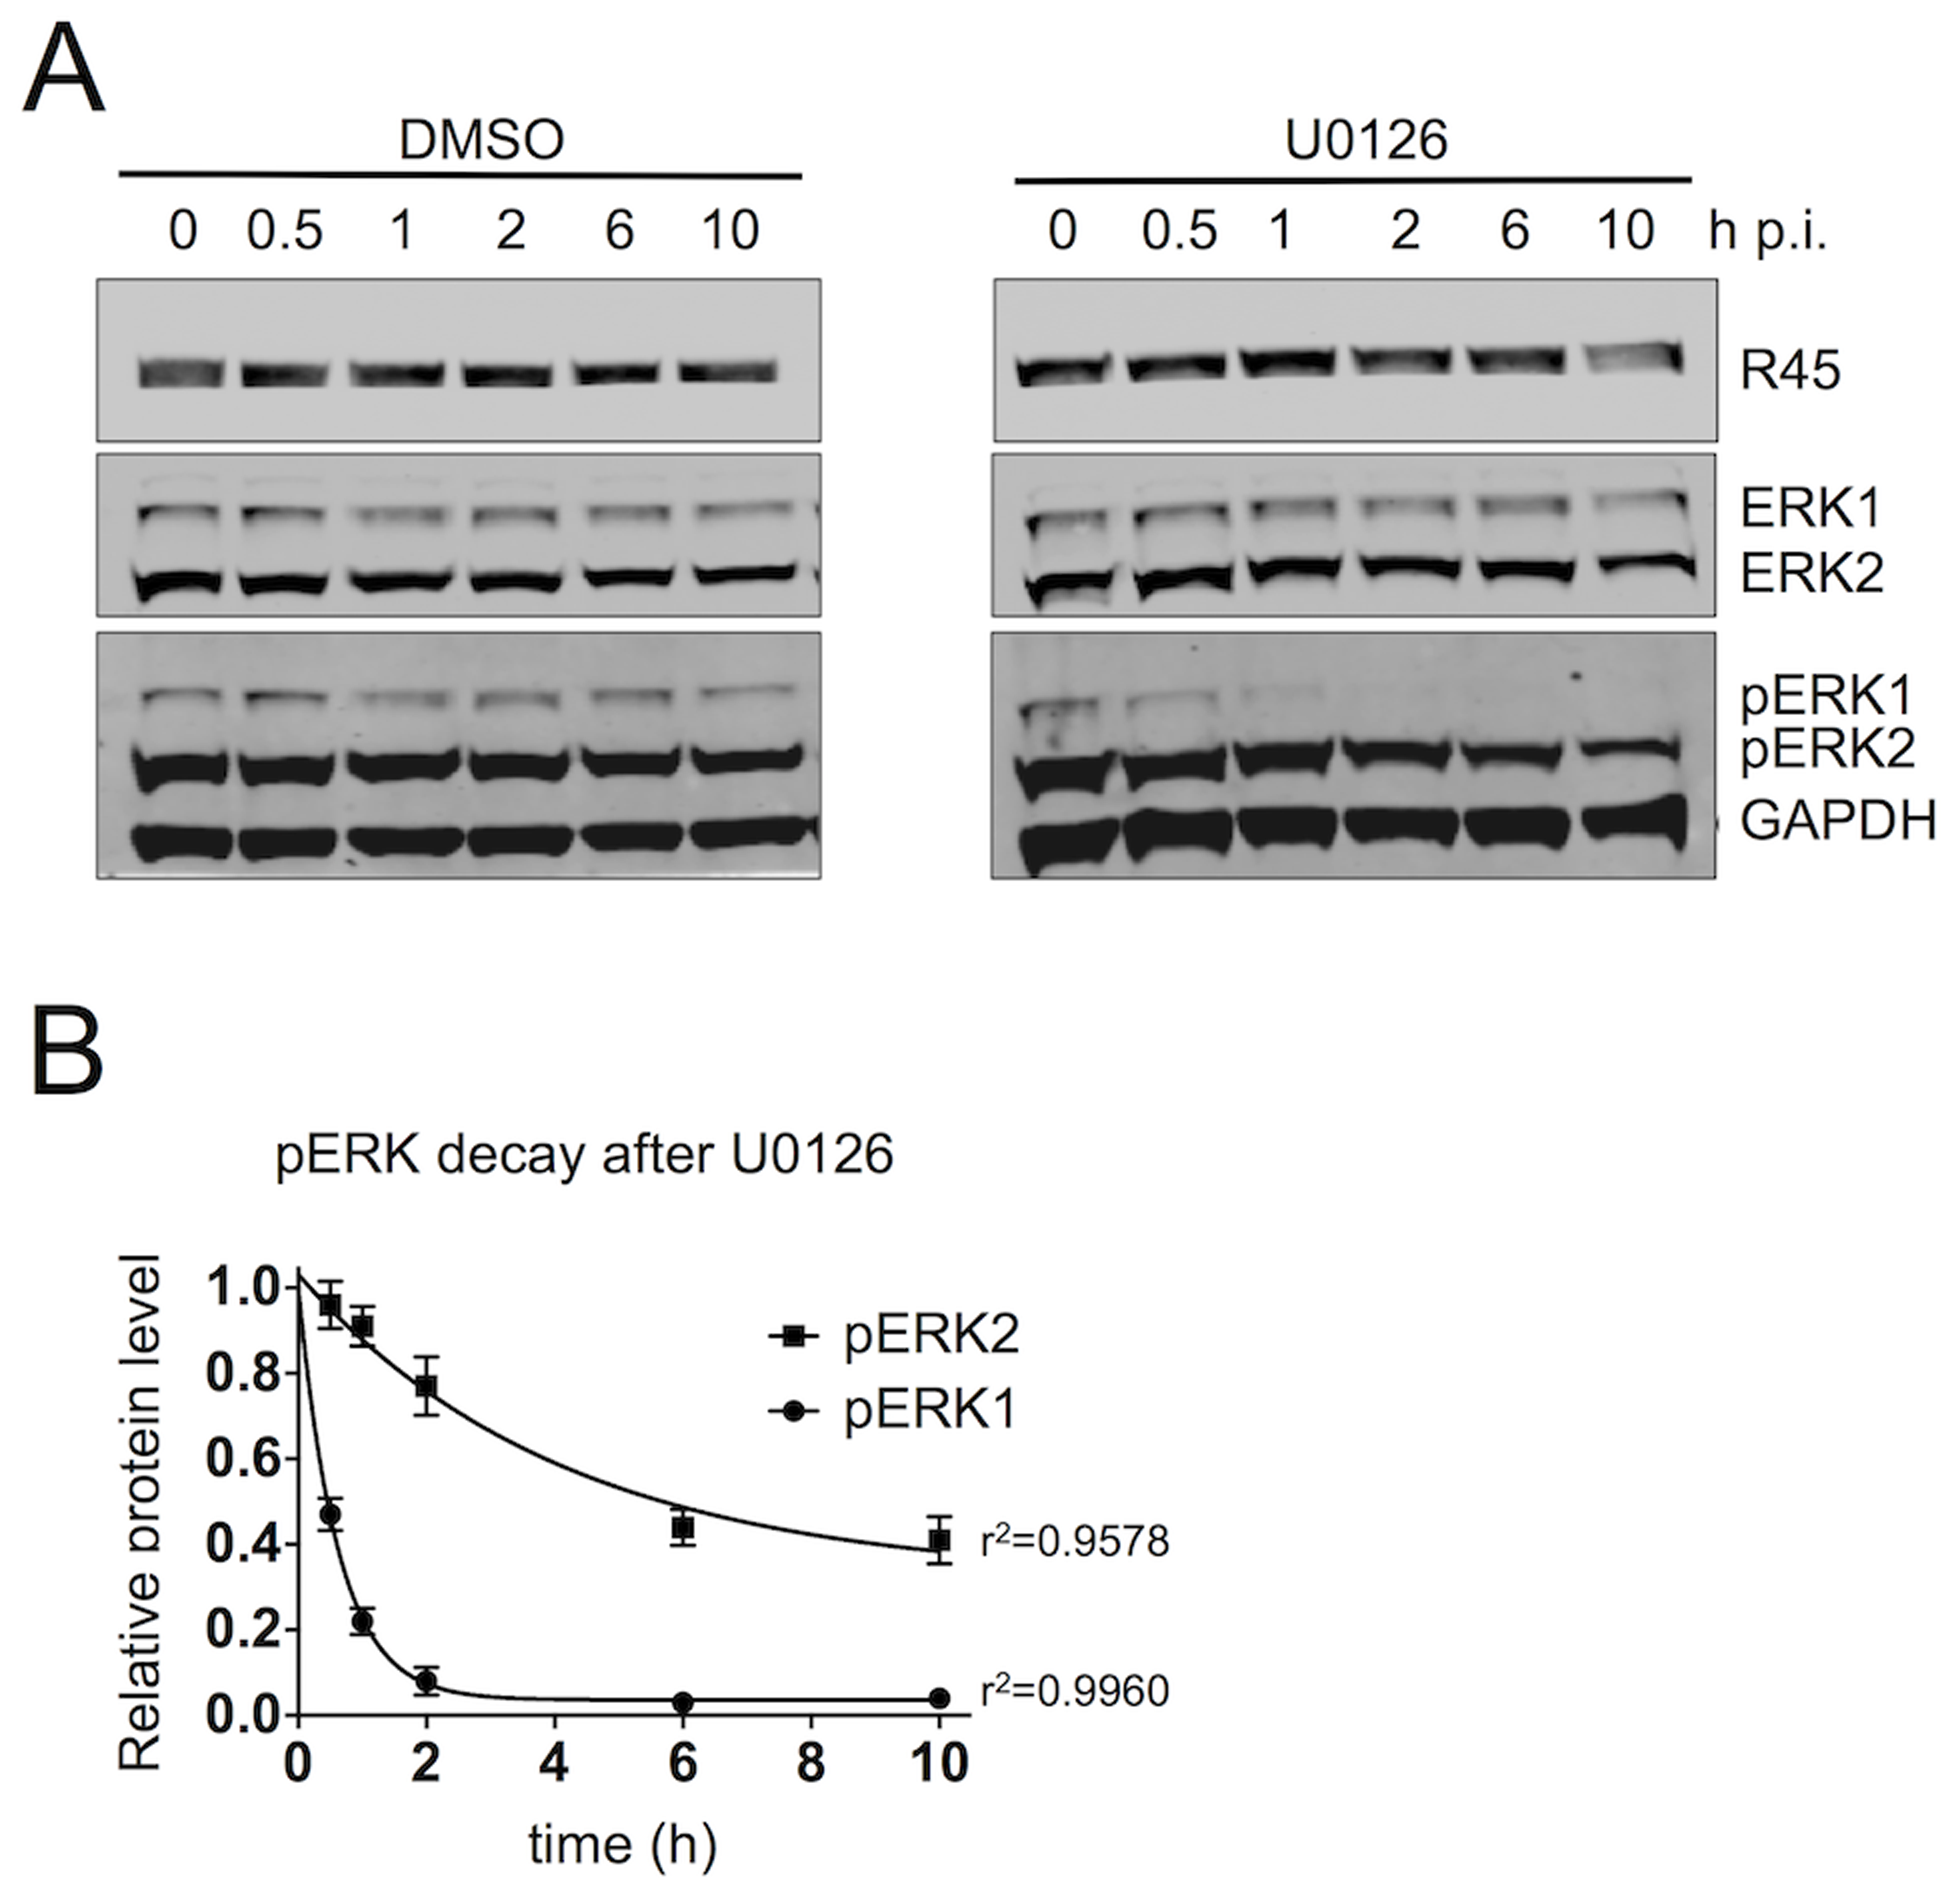 The R45-containing complex predominantly protects pERK2 over pERK1.